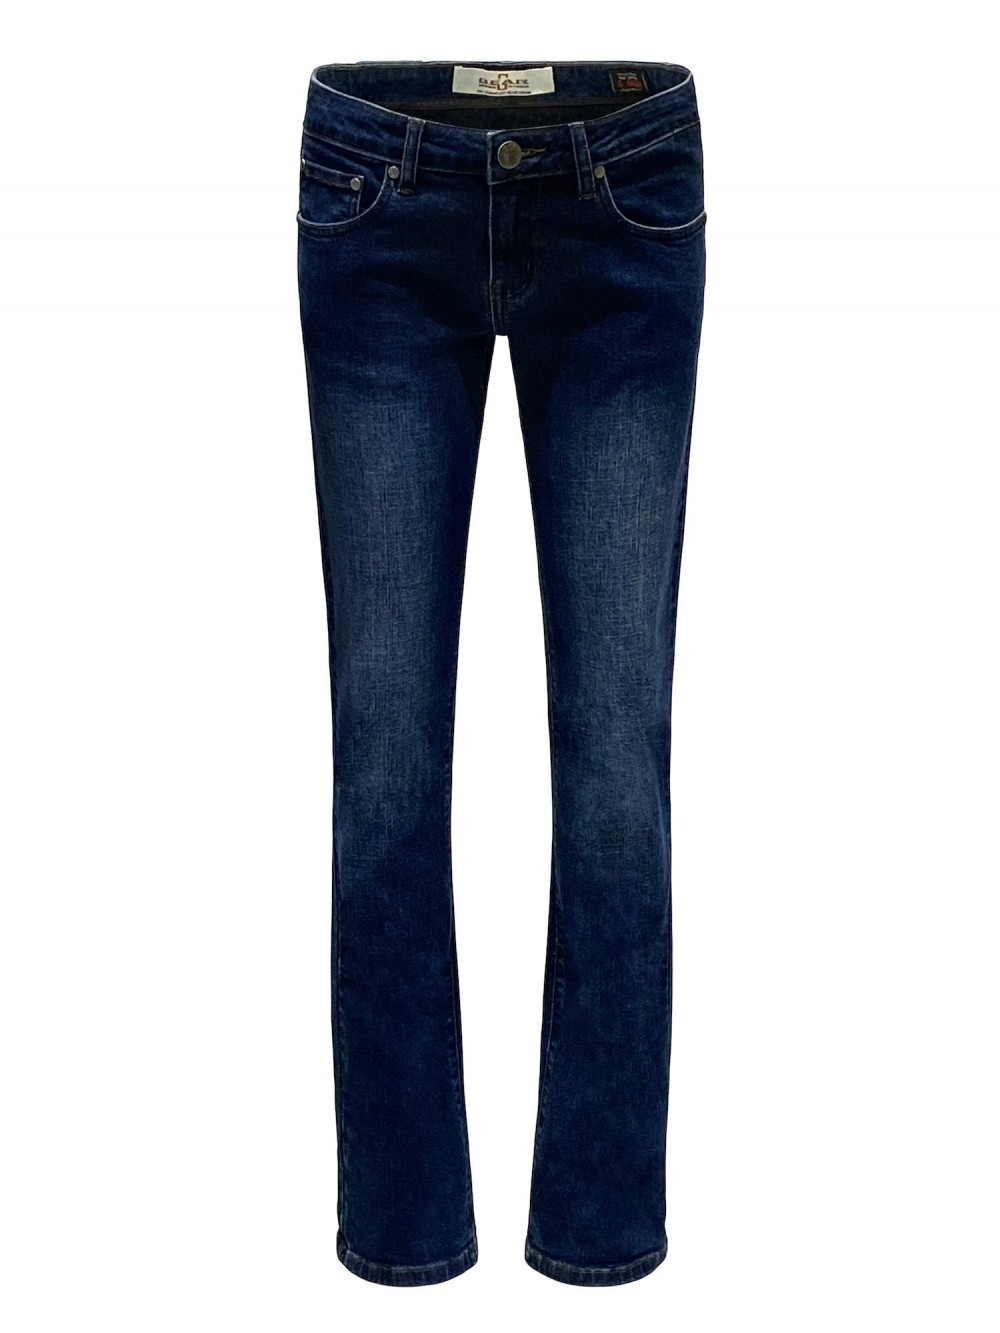 Jeans JSM322 stretch straight fit dr.blue